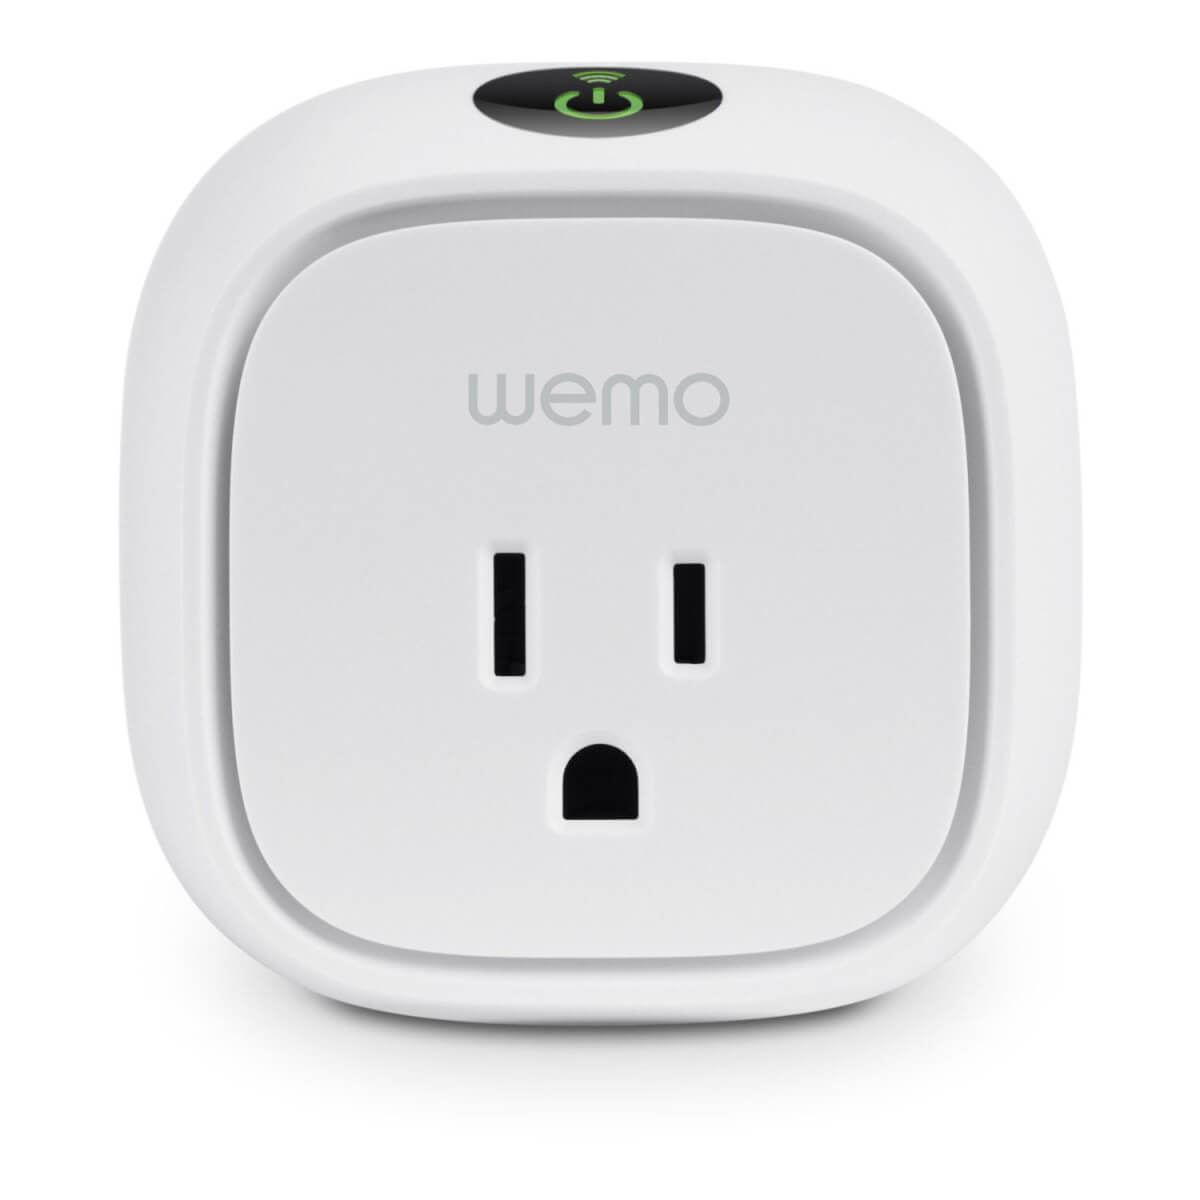 wemo_insight-compressor